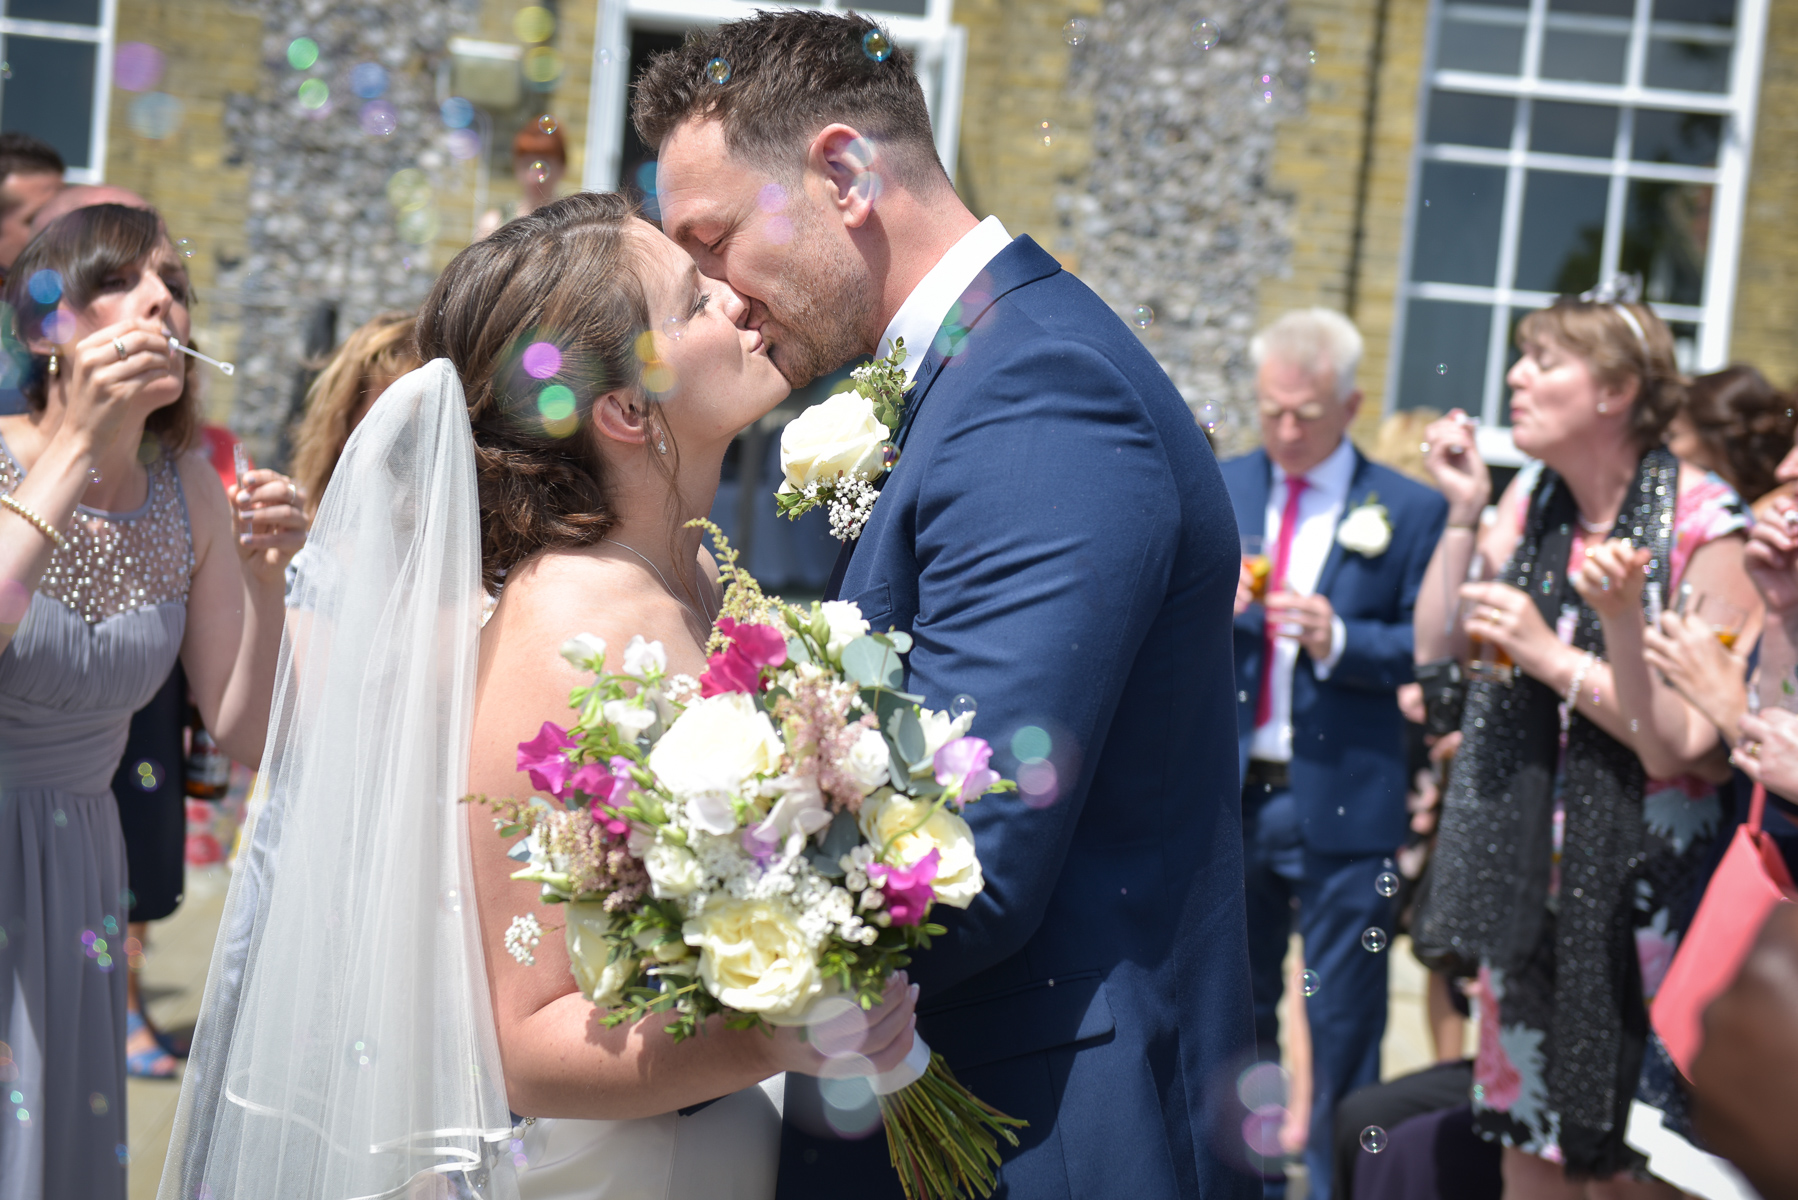 west sussex wedding - couple kissing in bubbles